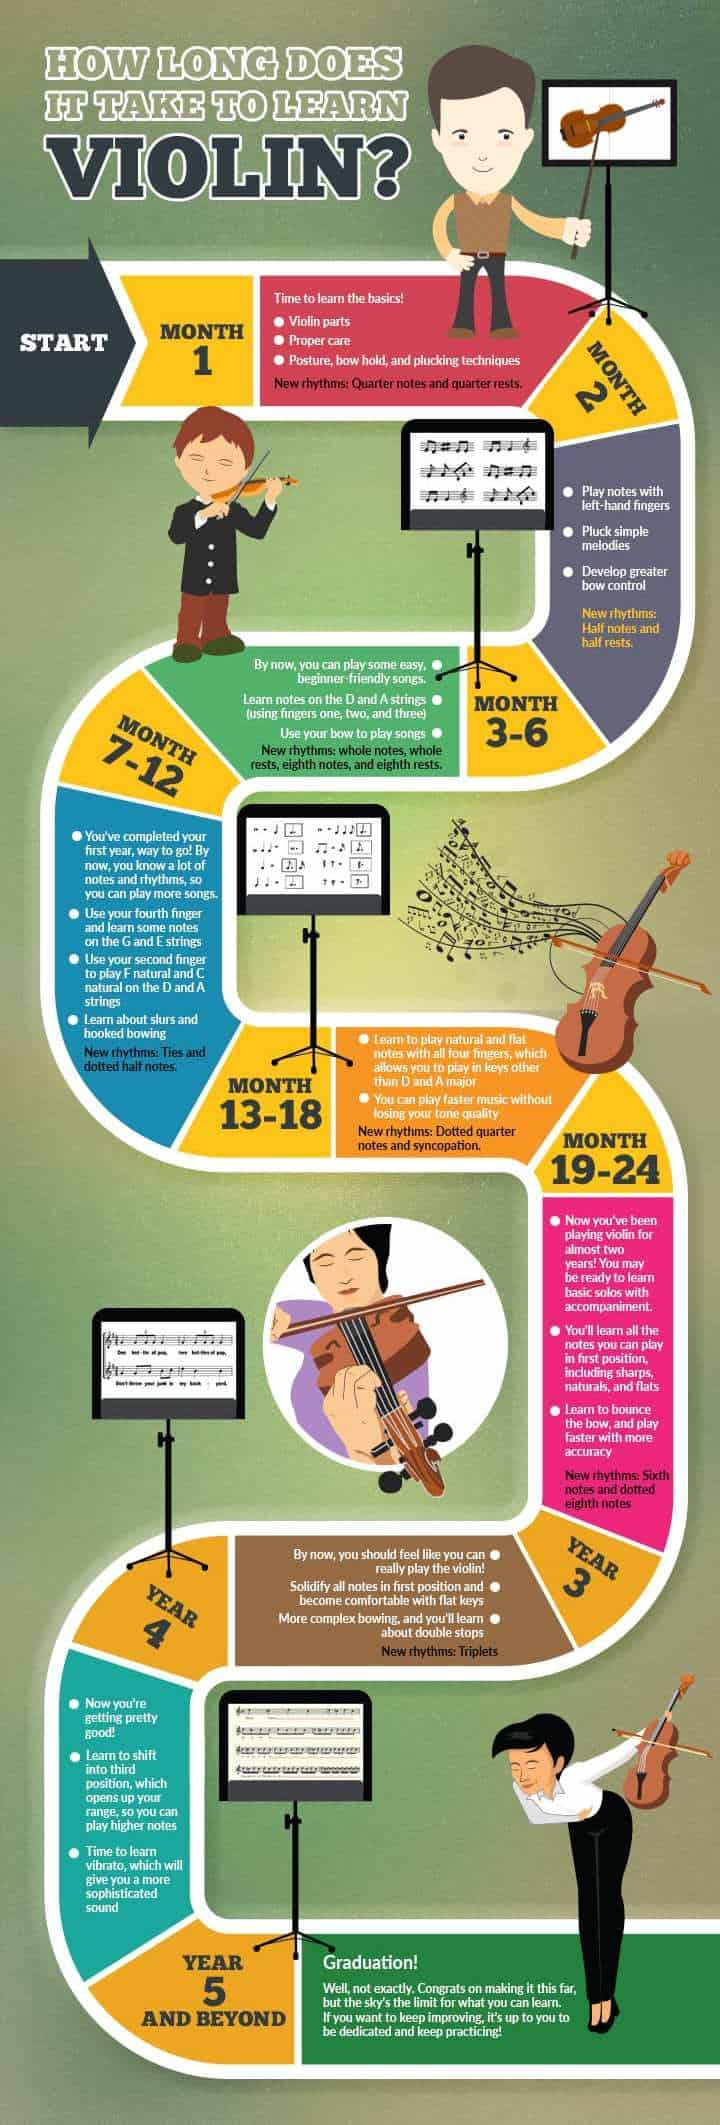 How long does it take to learn the violin?